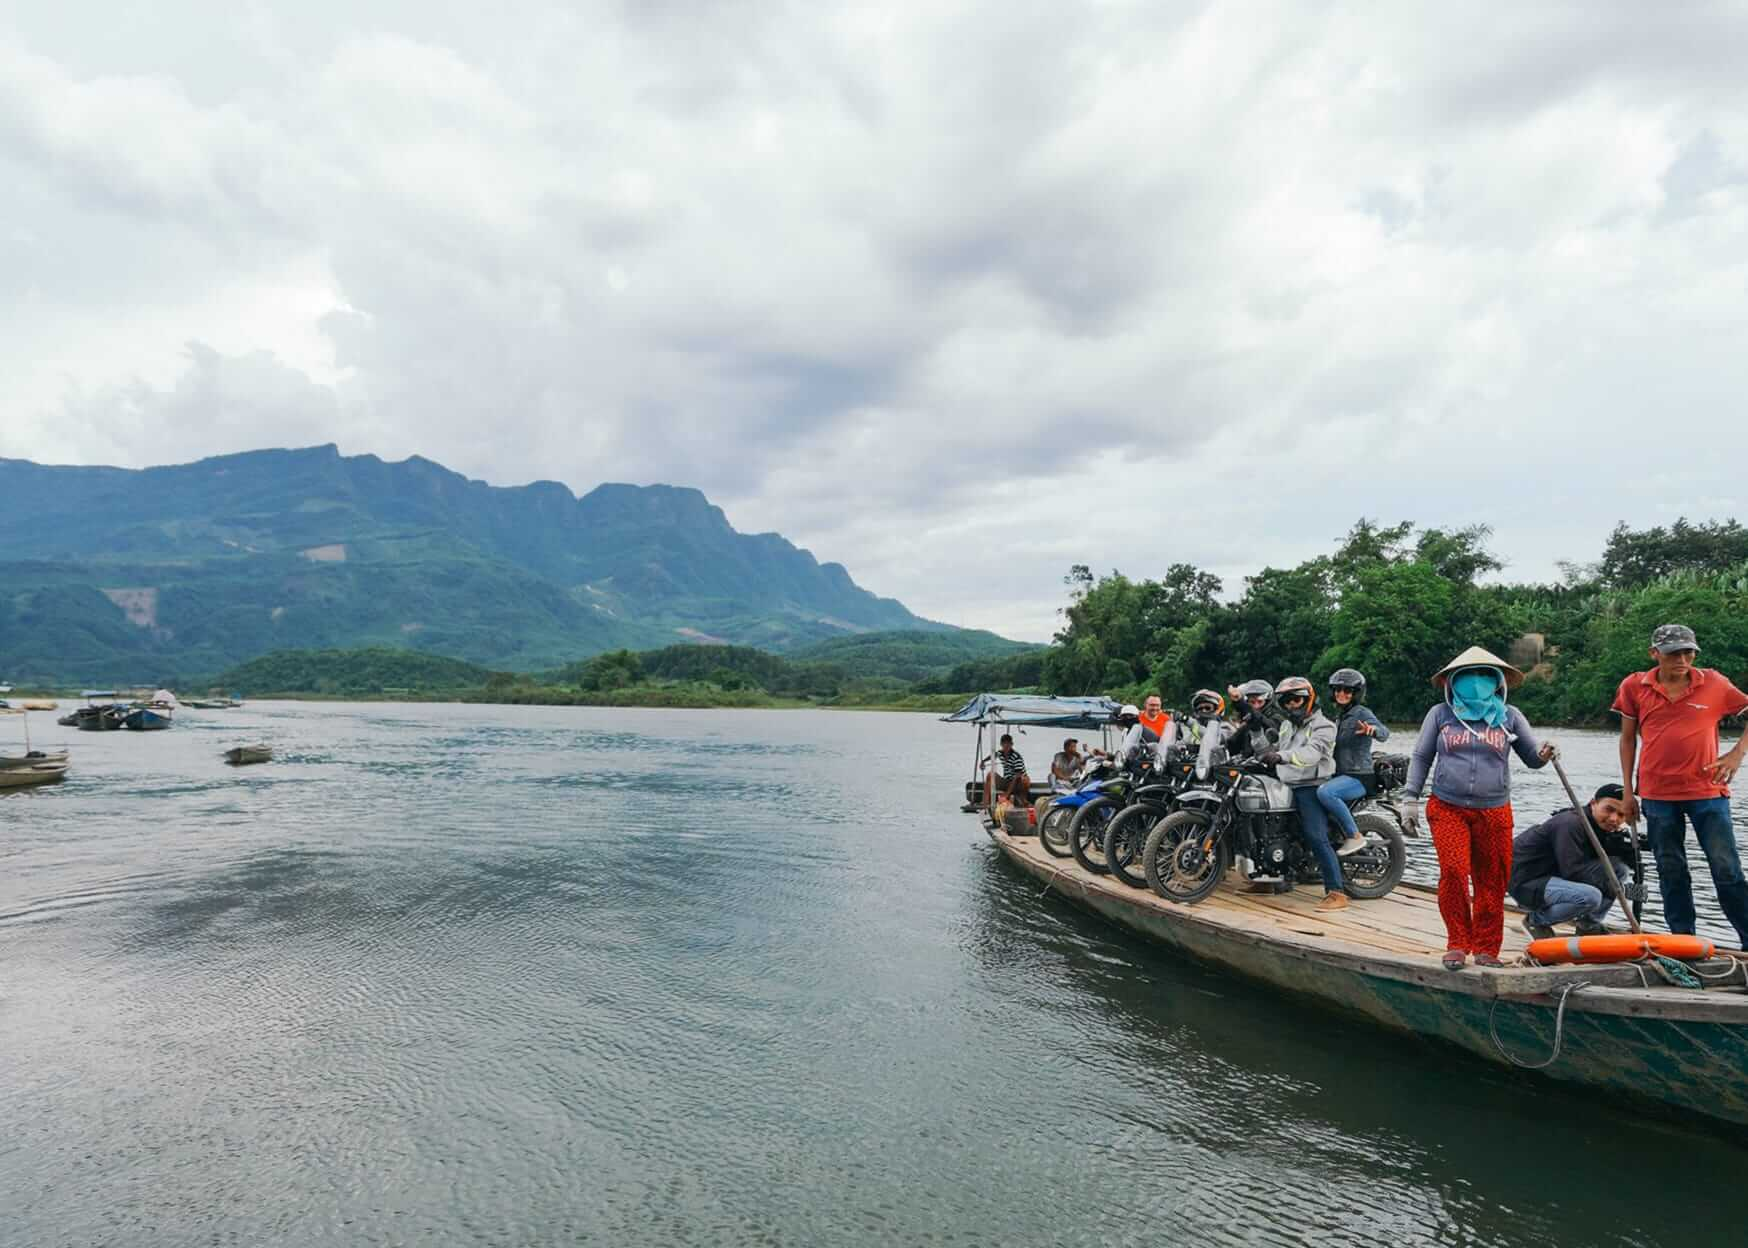 motorbike tour group on a ferry in Hoi An